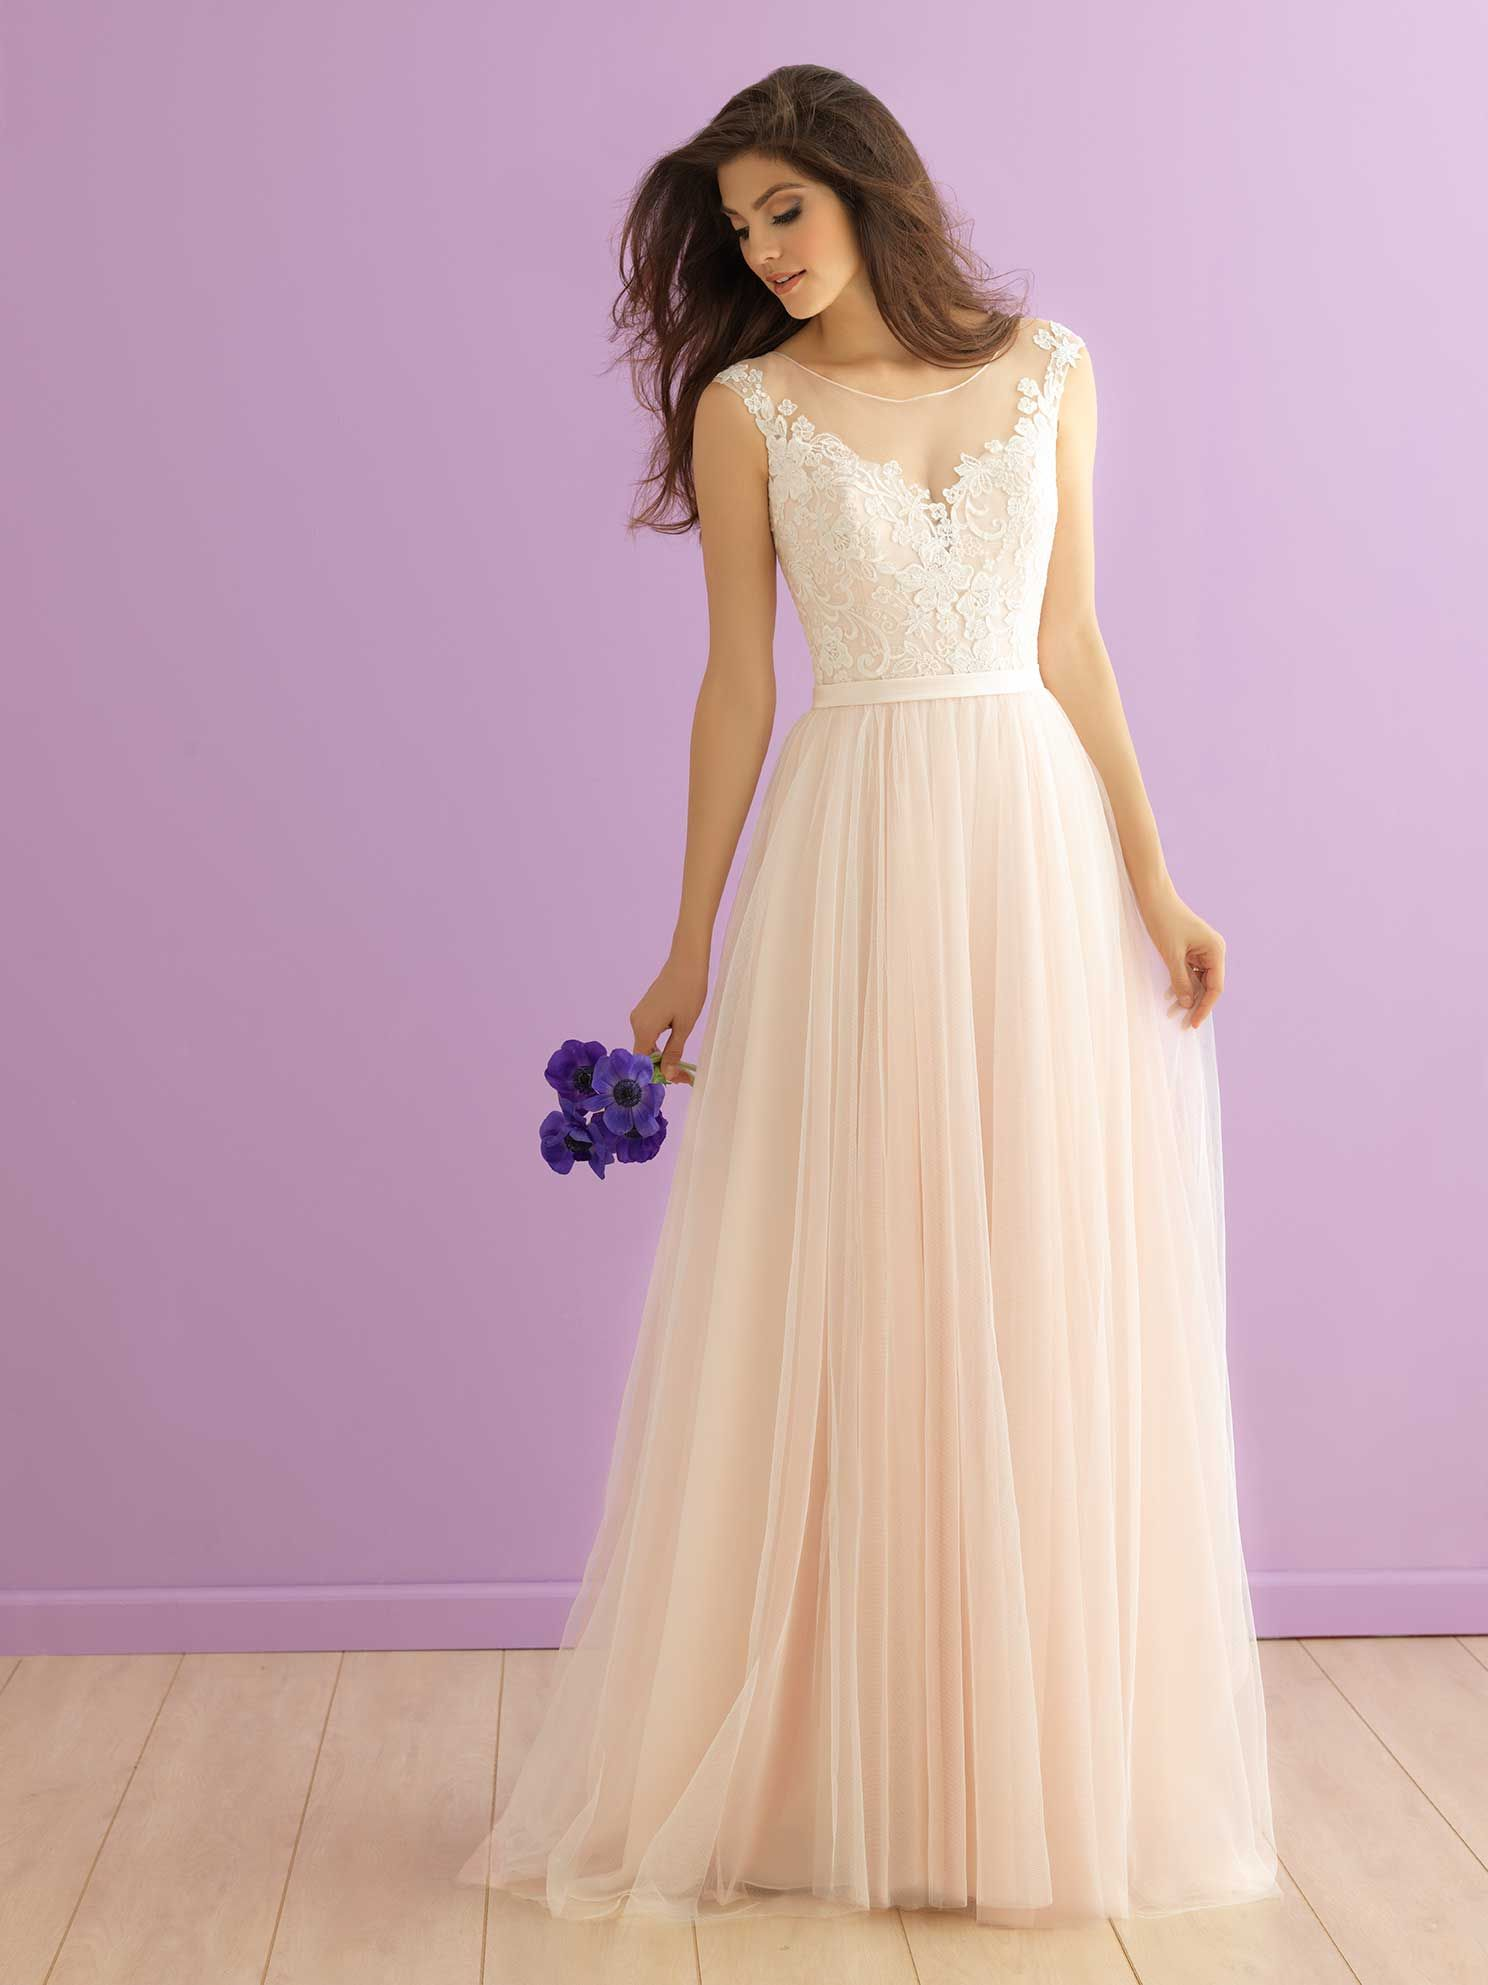 Cool Discover the Allure Romance Bridal Gown Find exceptional Allure Romance Bridal Gowns at The Wedding Shoppe